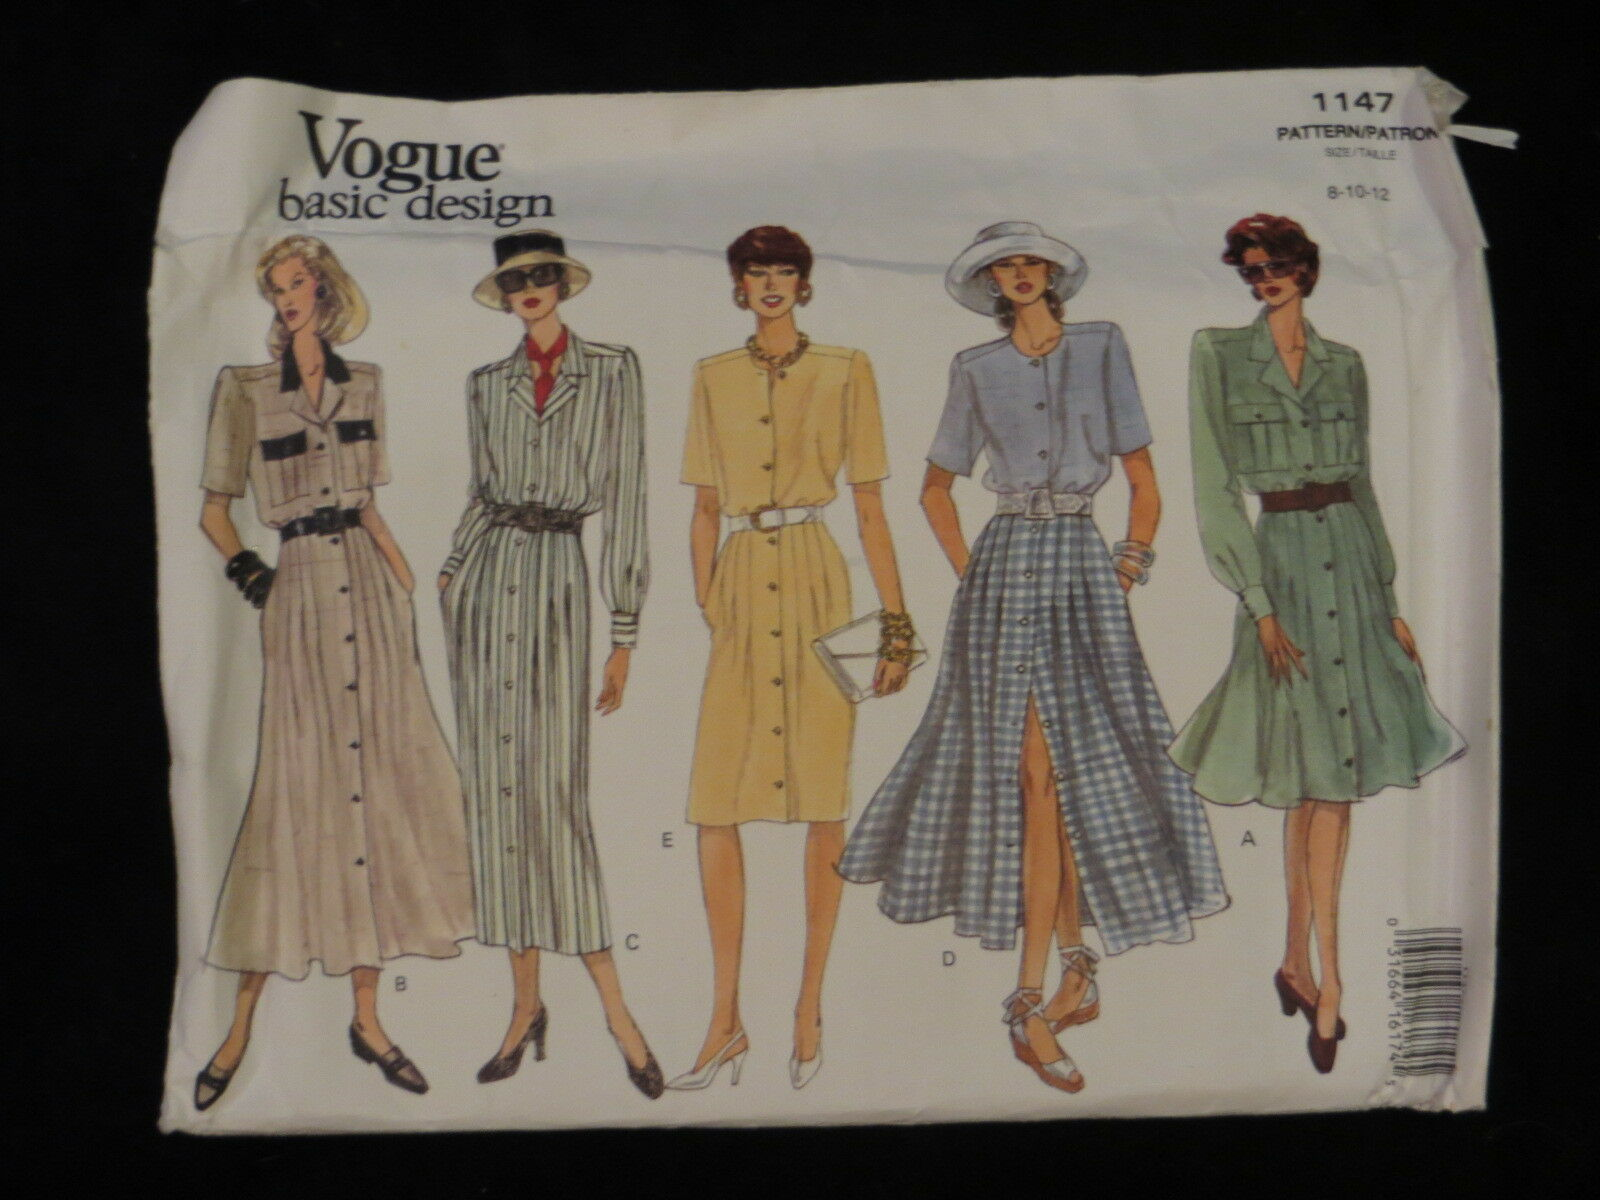 Primary image for 1993 Vogue Basic Design 1147 PATTERN Dress Size 8 10 12